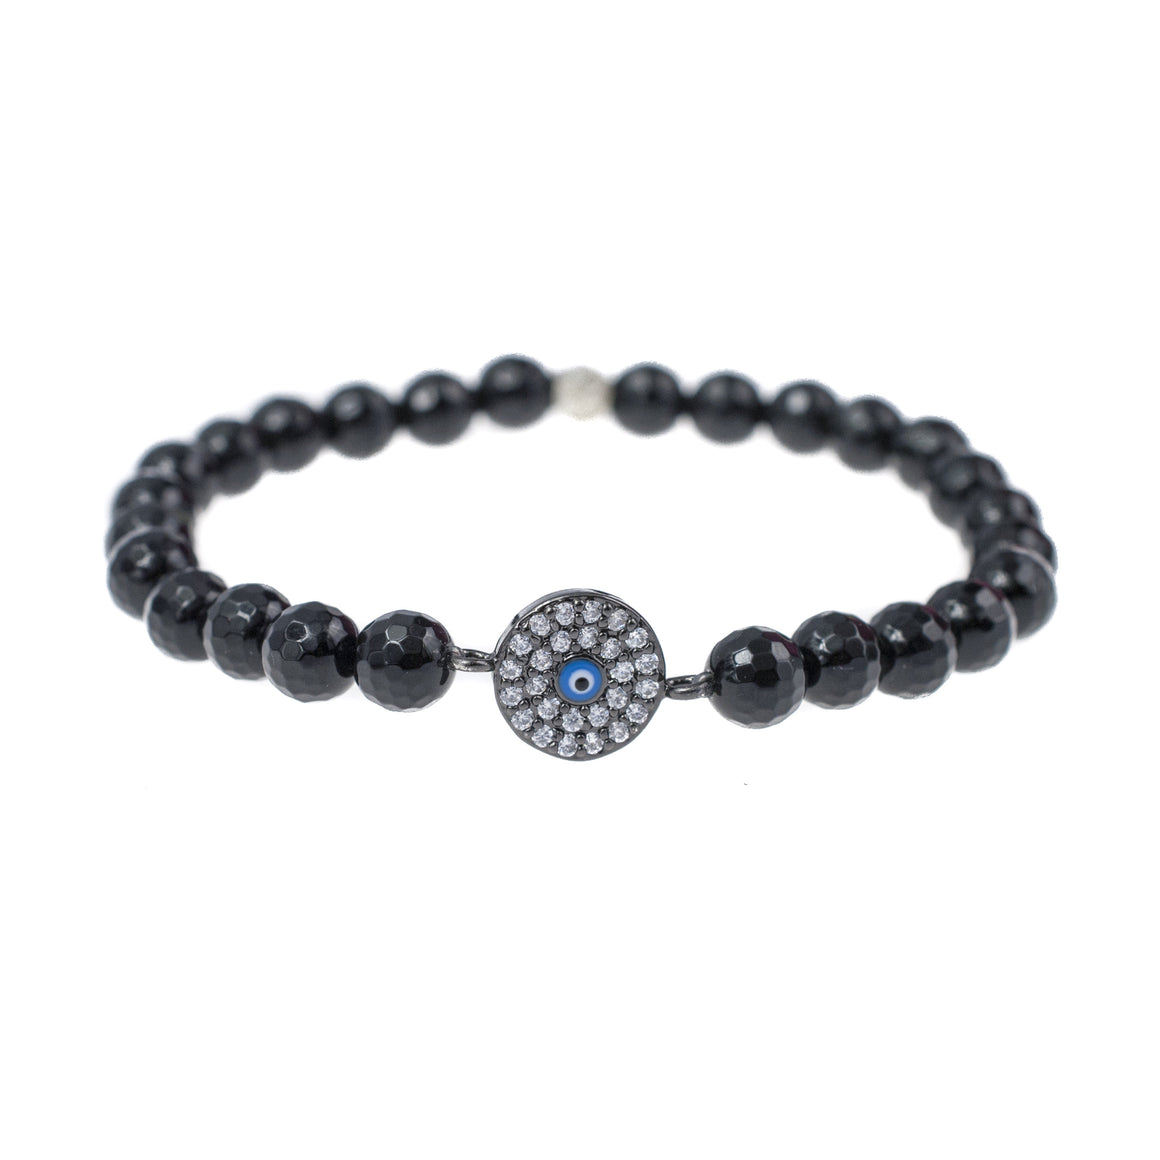 Small Evil Eye Talisman In Black